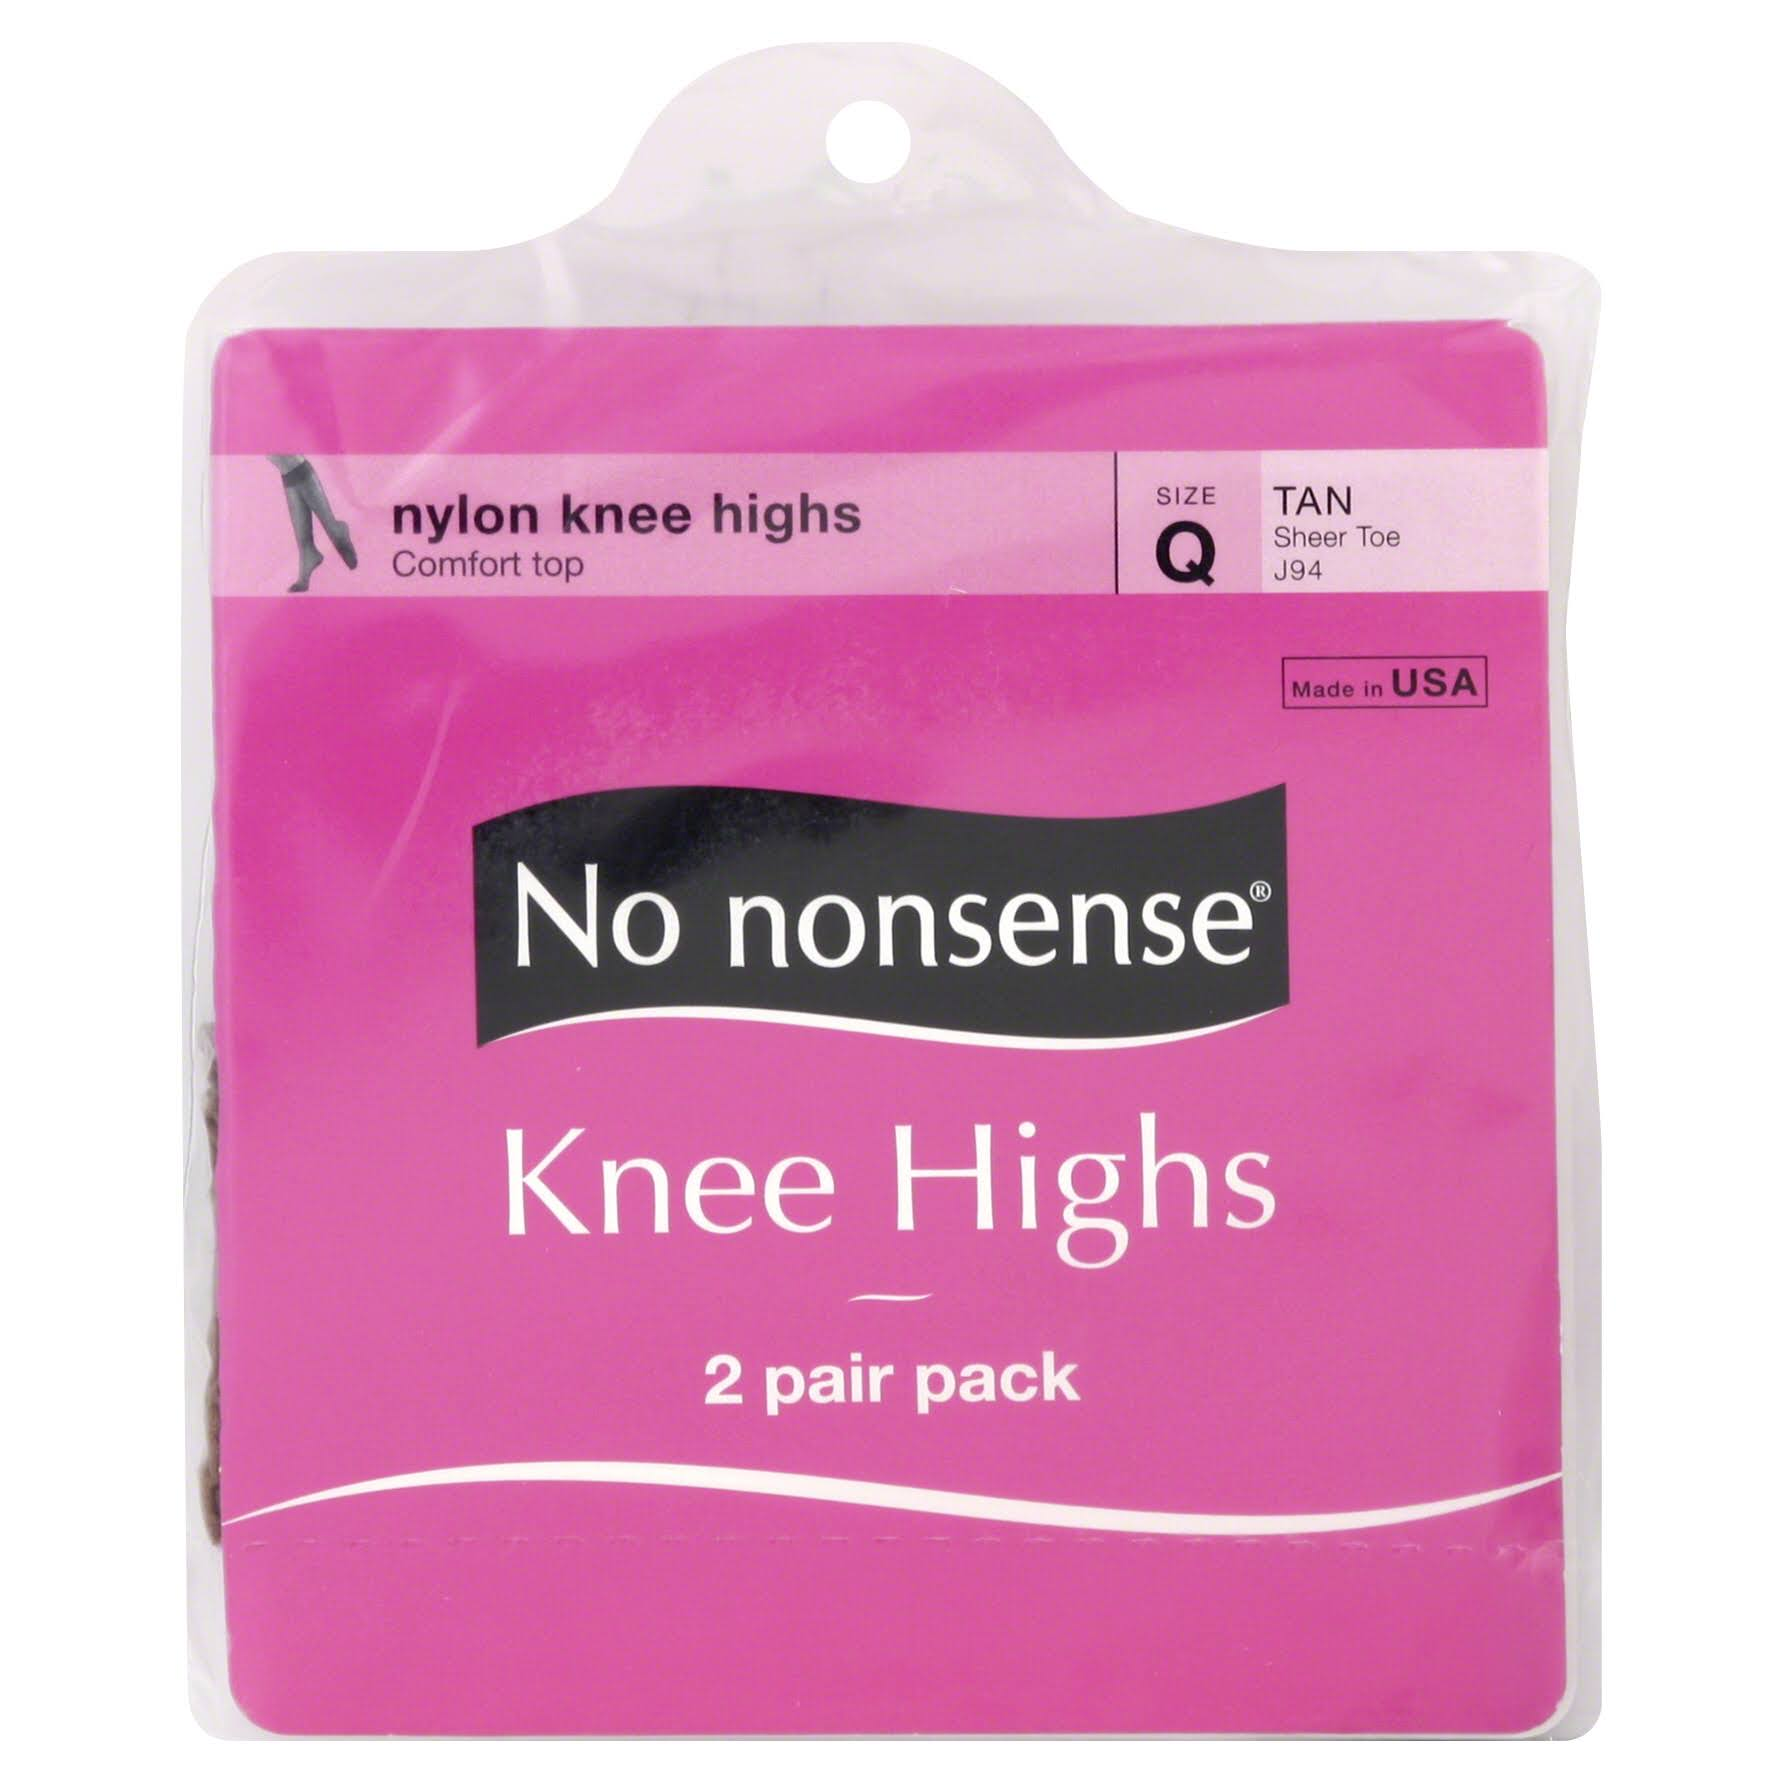 No Nonsense Knee Highs, Tan - 2 pair